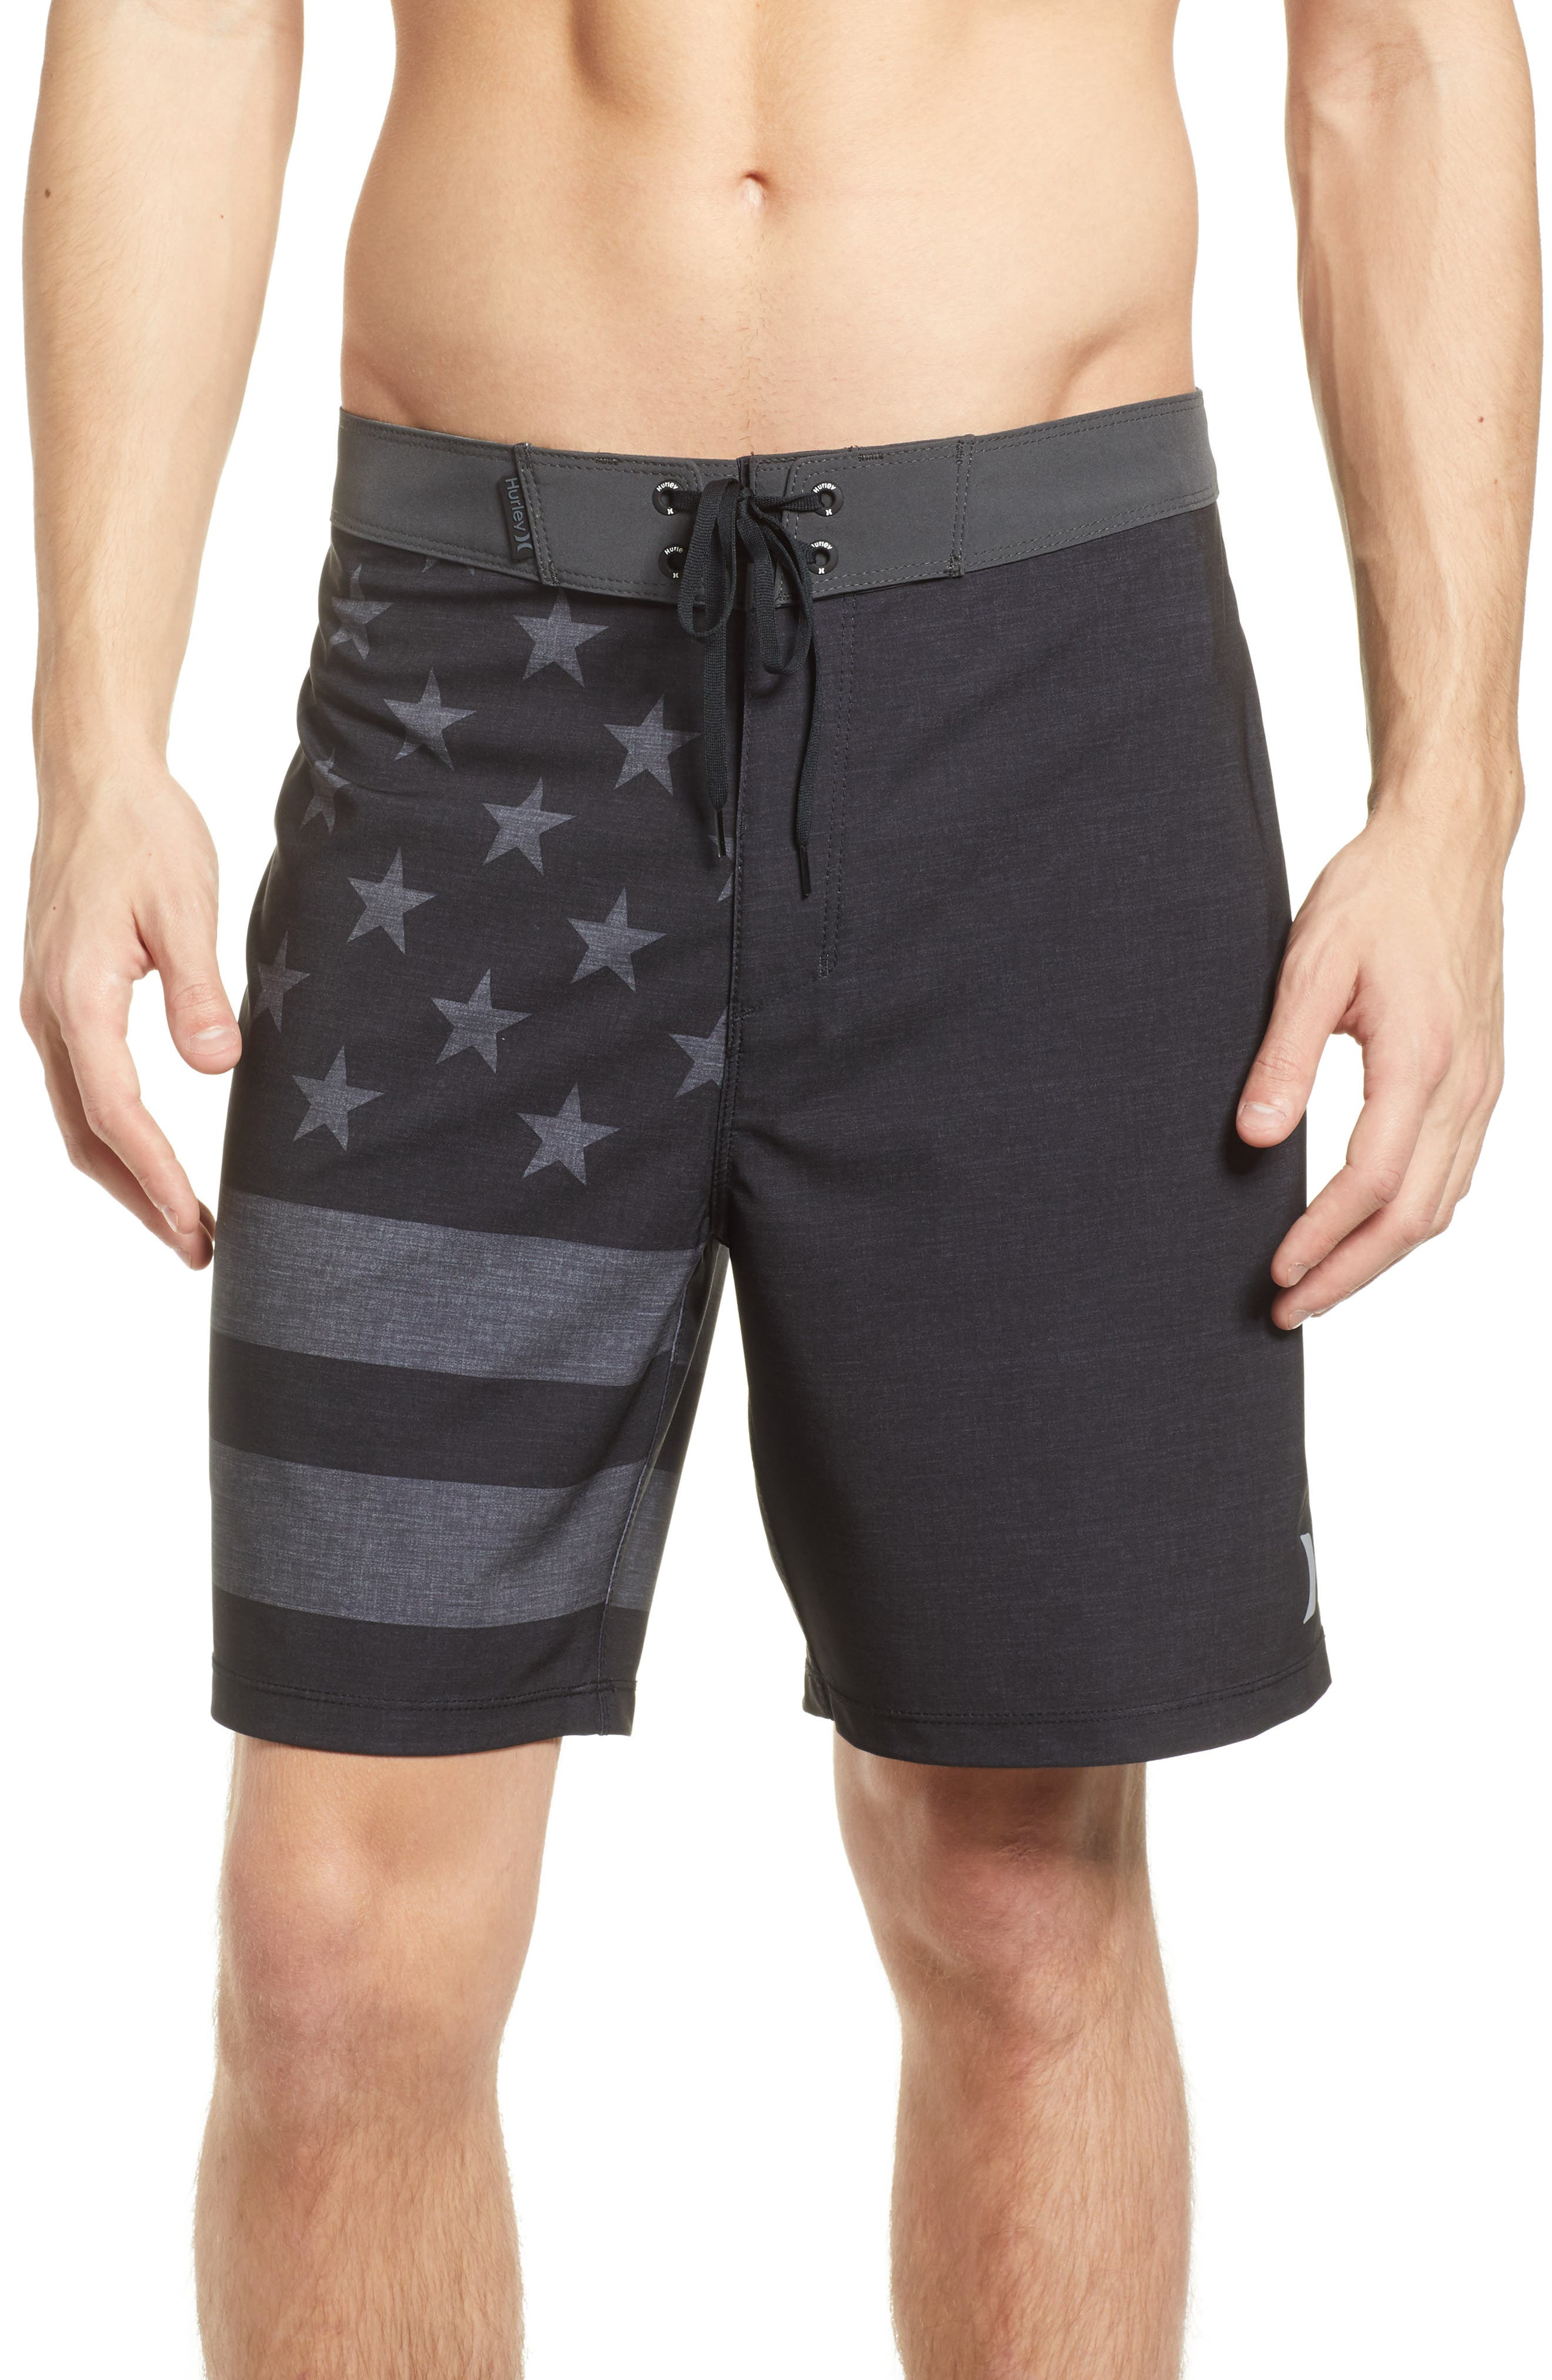 Phantom Cheers Board Shorts,                         Main,                         color, Black